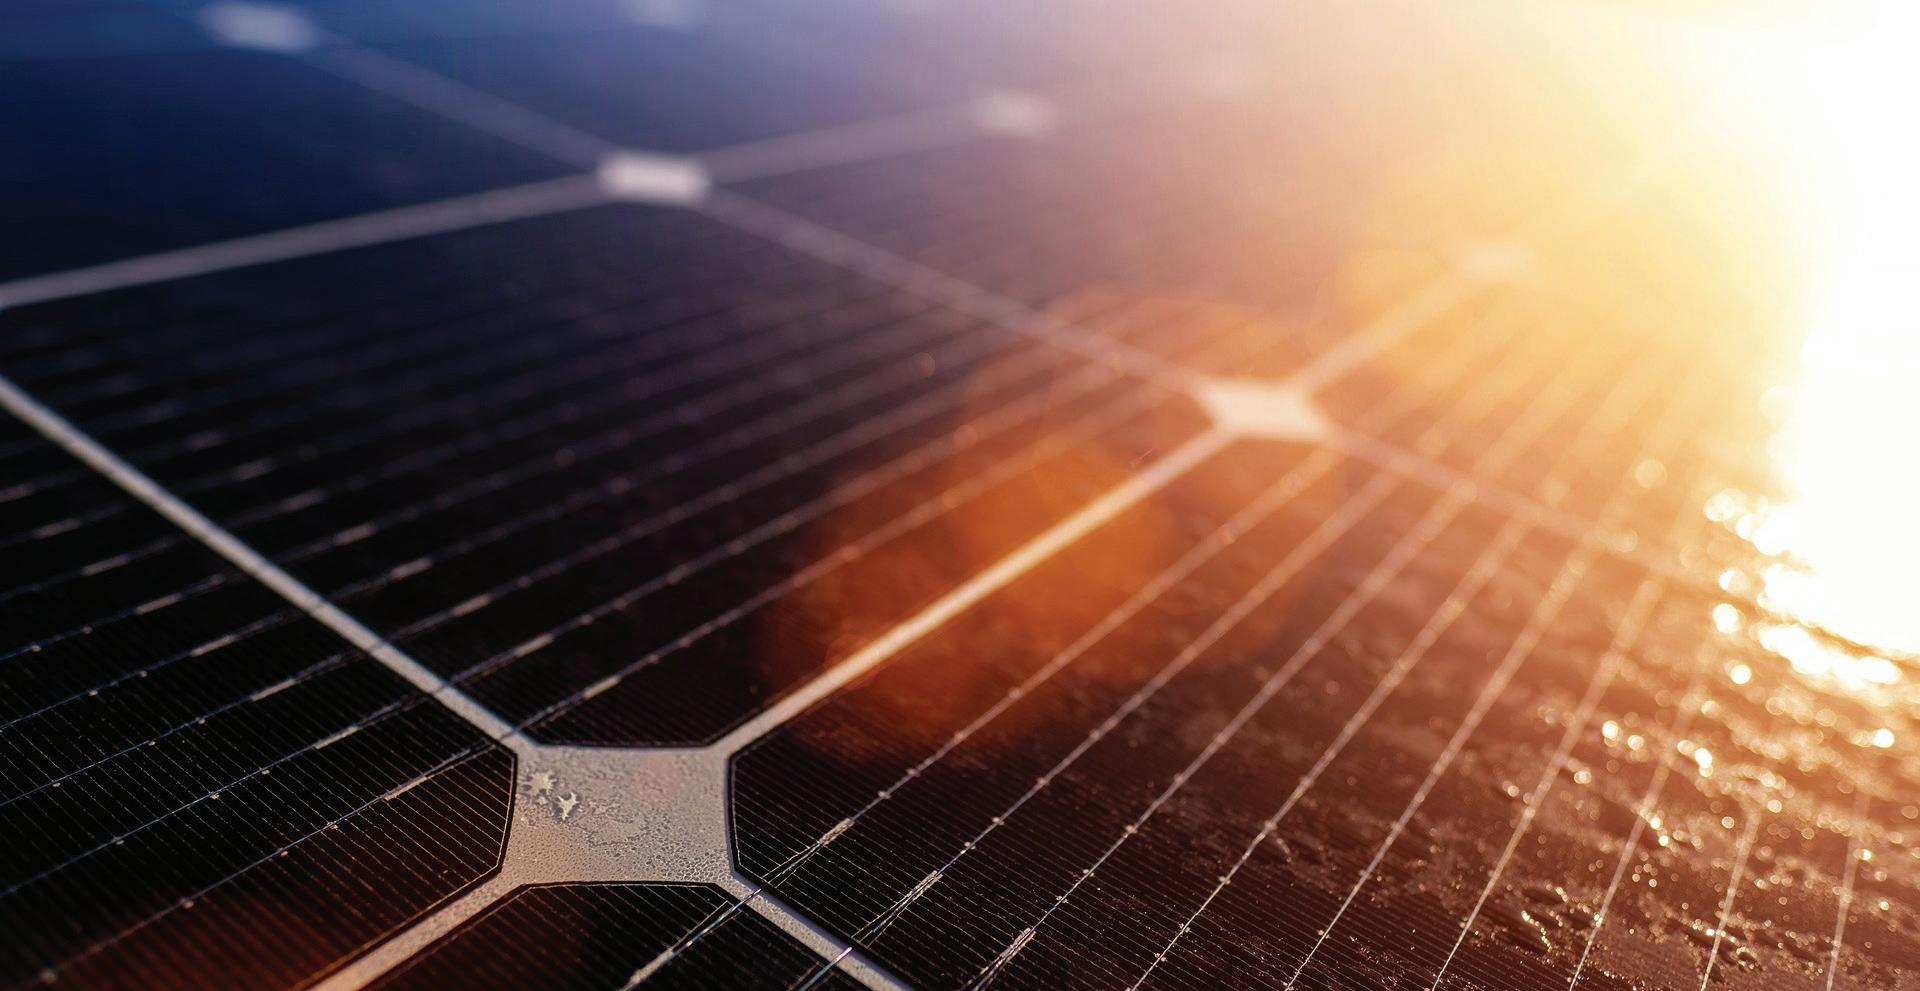 Page 22 of CLOSING THE GAP: USING CONDUCTIVE POLYMERS TO MAKE MORE EFFICIENT SOLAR CELLS